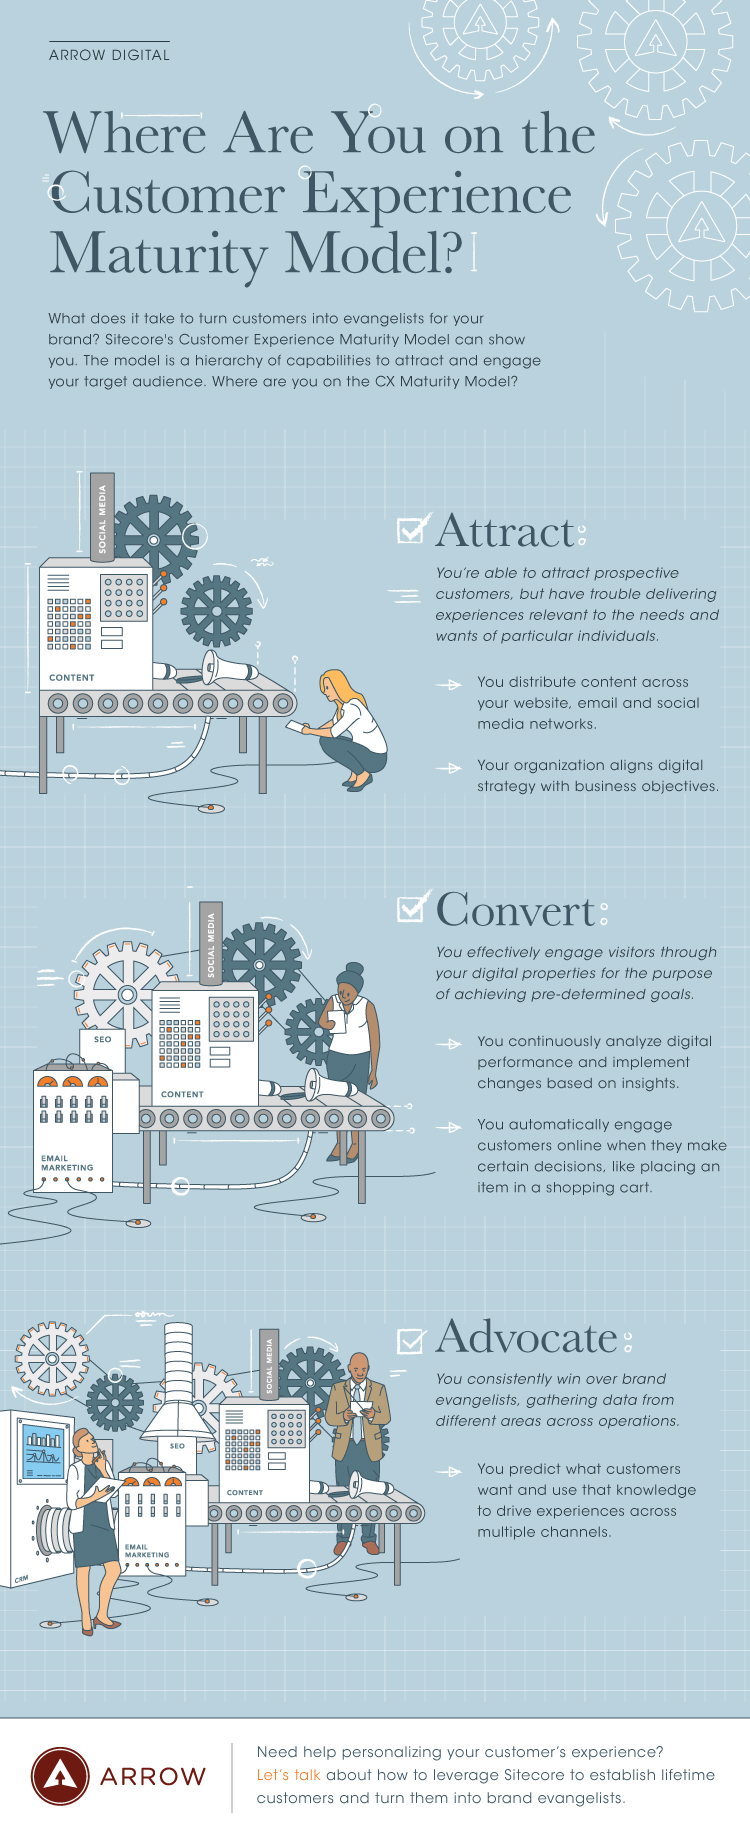 What is an infographic and how is it made? | Brafton